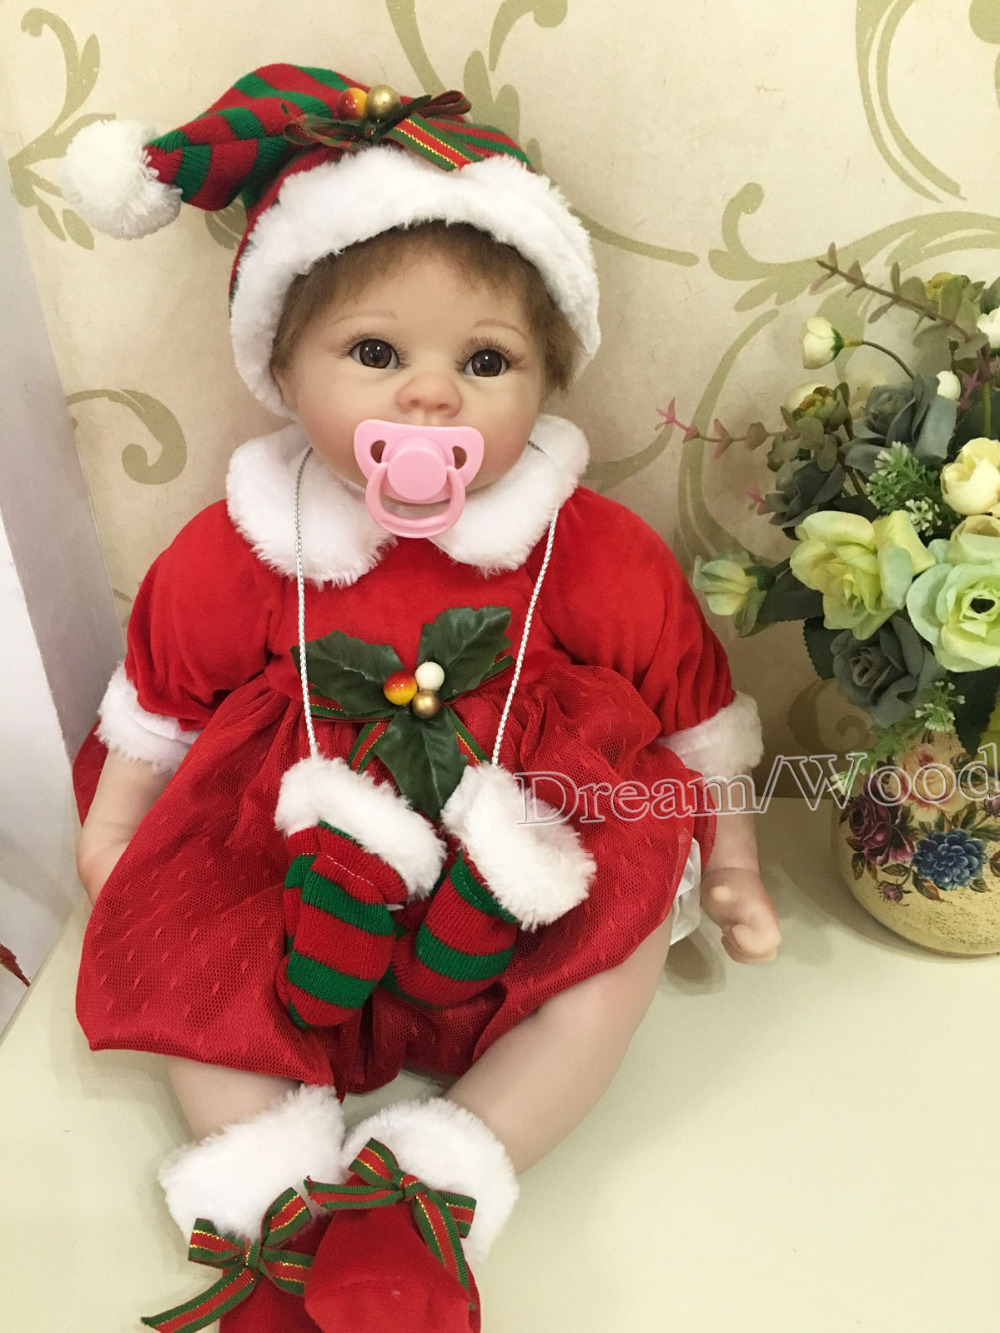 Silicone Reborn Baby Doll Toys With Winter Christmas Clothes Kids Child Birthday New Year Gifts Lifelike Reborn Girls DollsSilicone Reborn Baby Doll Toys With Winter Christmas Clothes Kids Child Birthday New Year Gifts Lifelike Reborn Girls Dolls